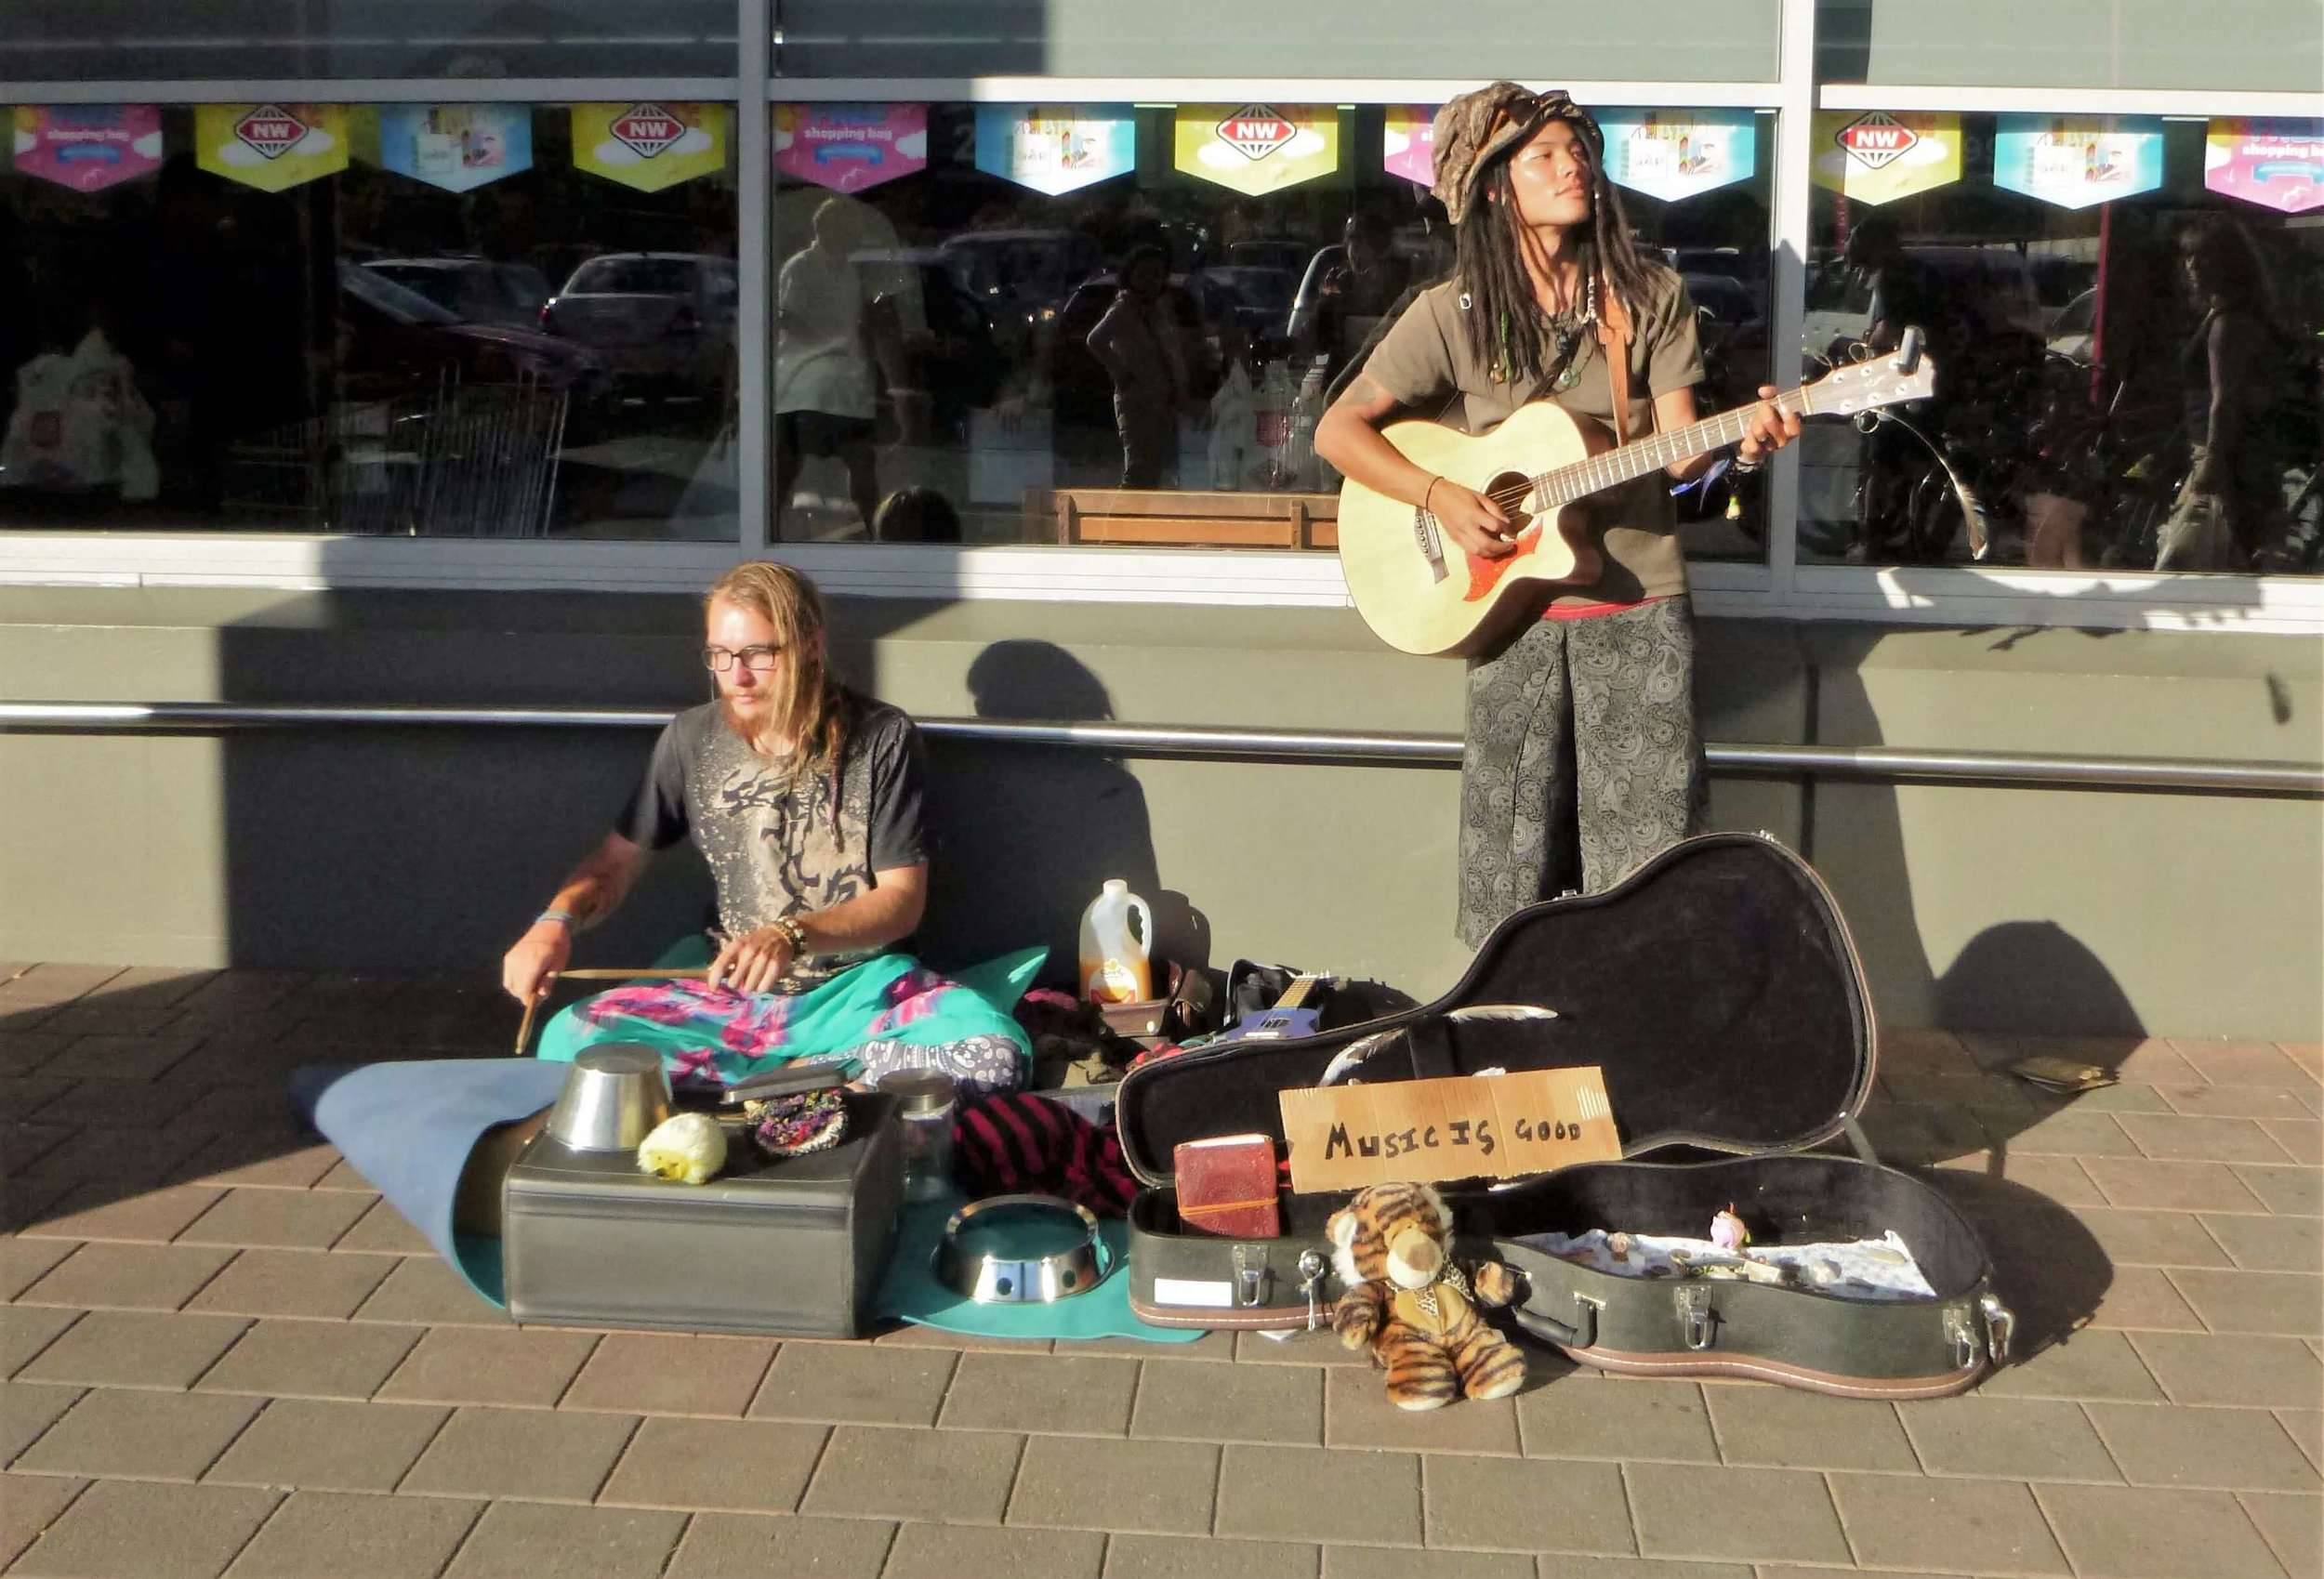 Two gypsies working and travelling as buskers